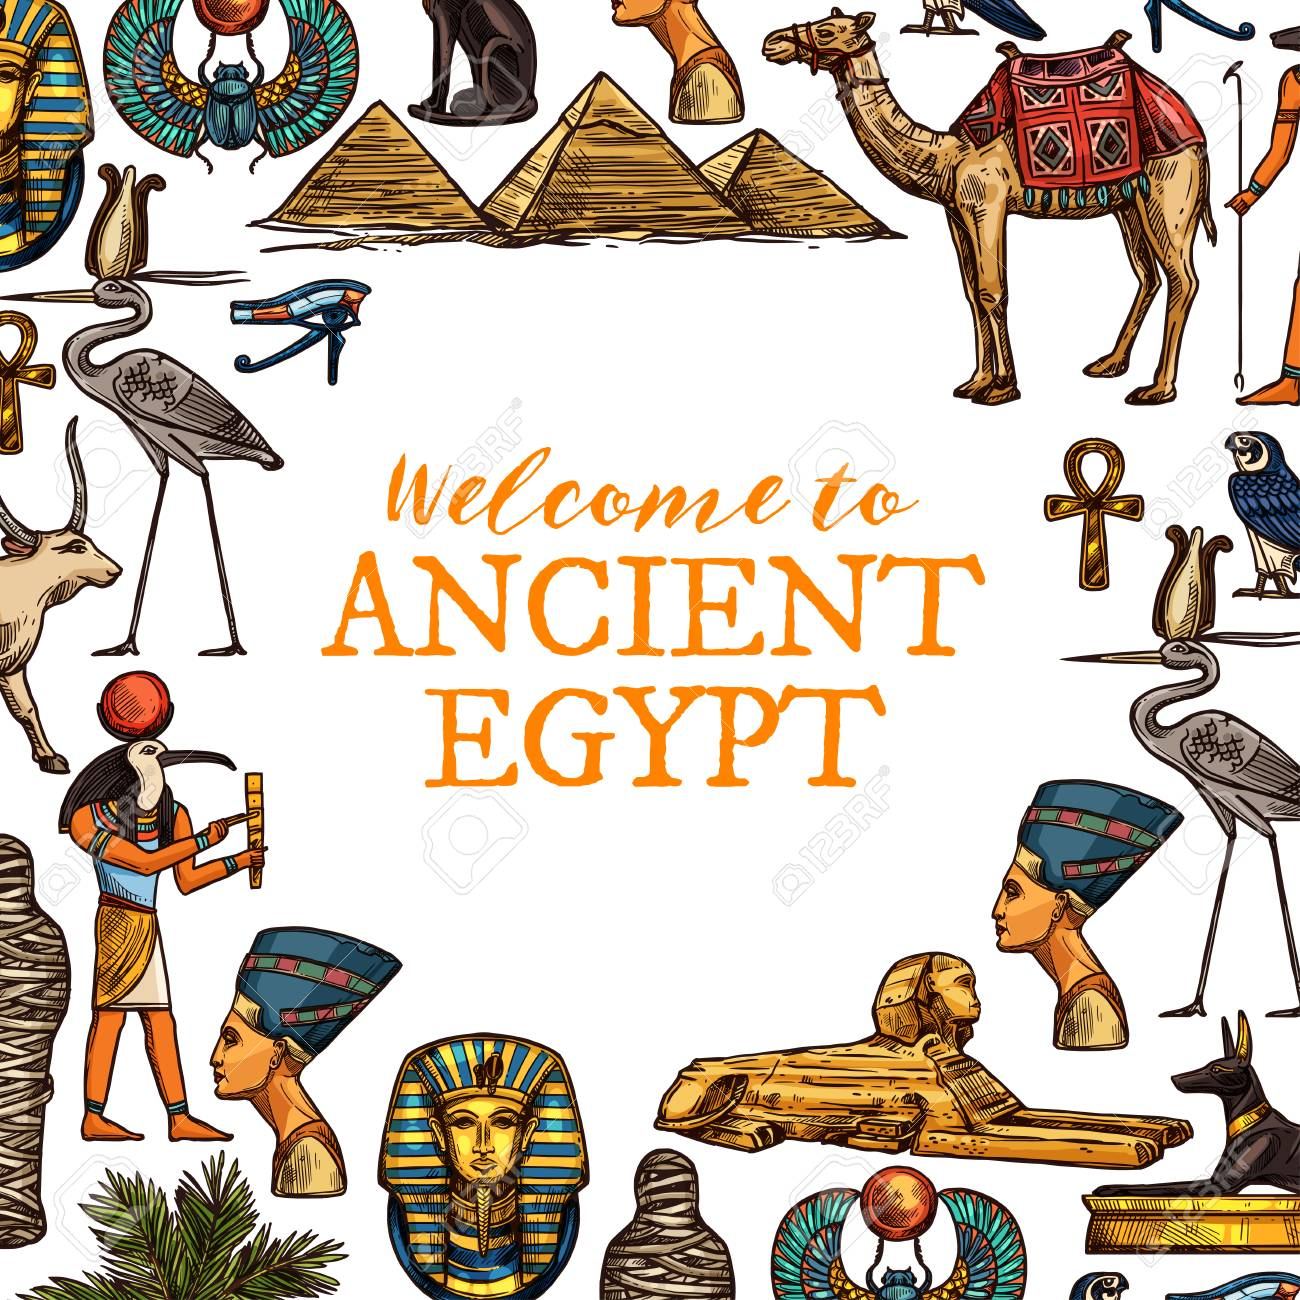 Welcome to ancient Egypt travel poster. Pharaohs, ankh and Ra god, Cleopatra head and sphinx, Great pyramids and camel, golden cross and stork, Tutankhamun and scarab - 109840706